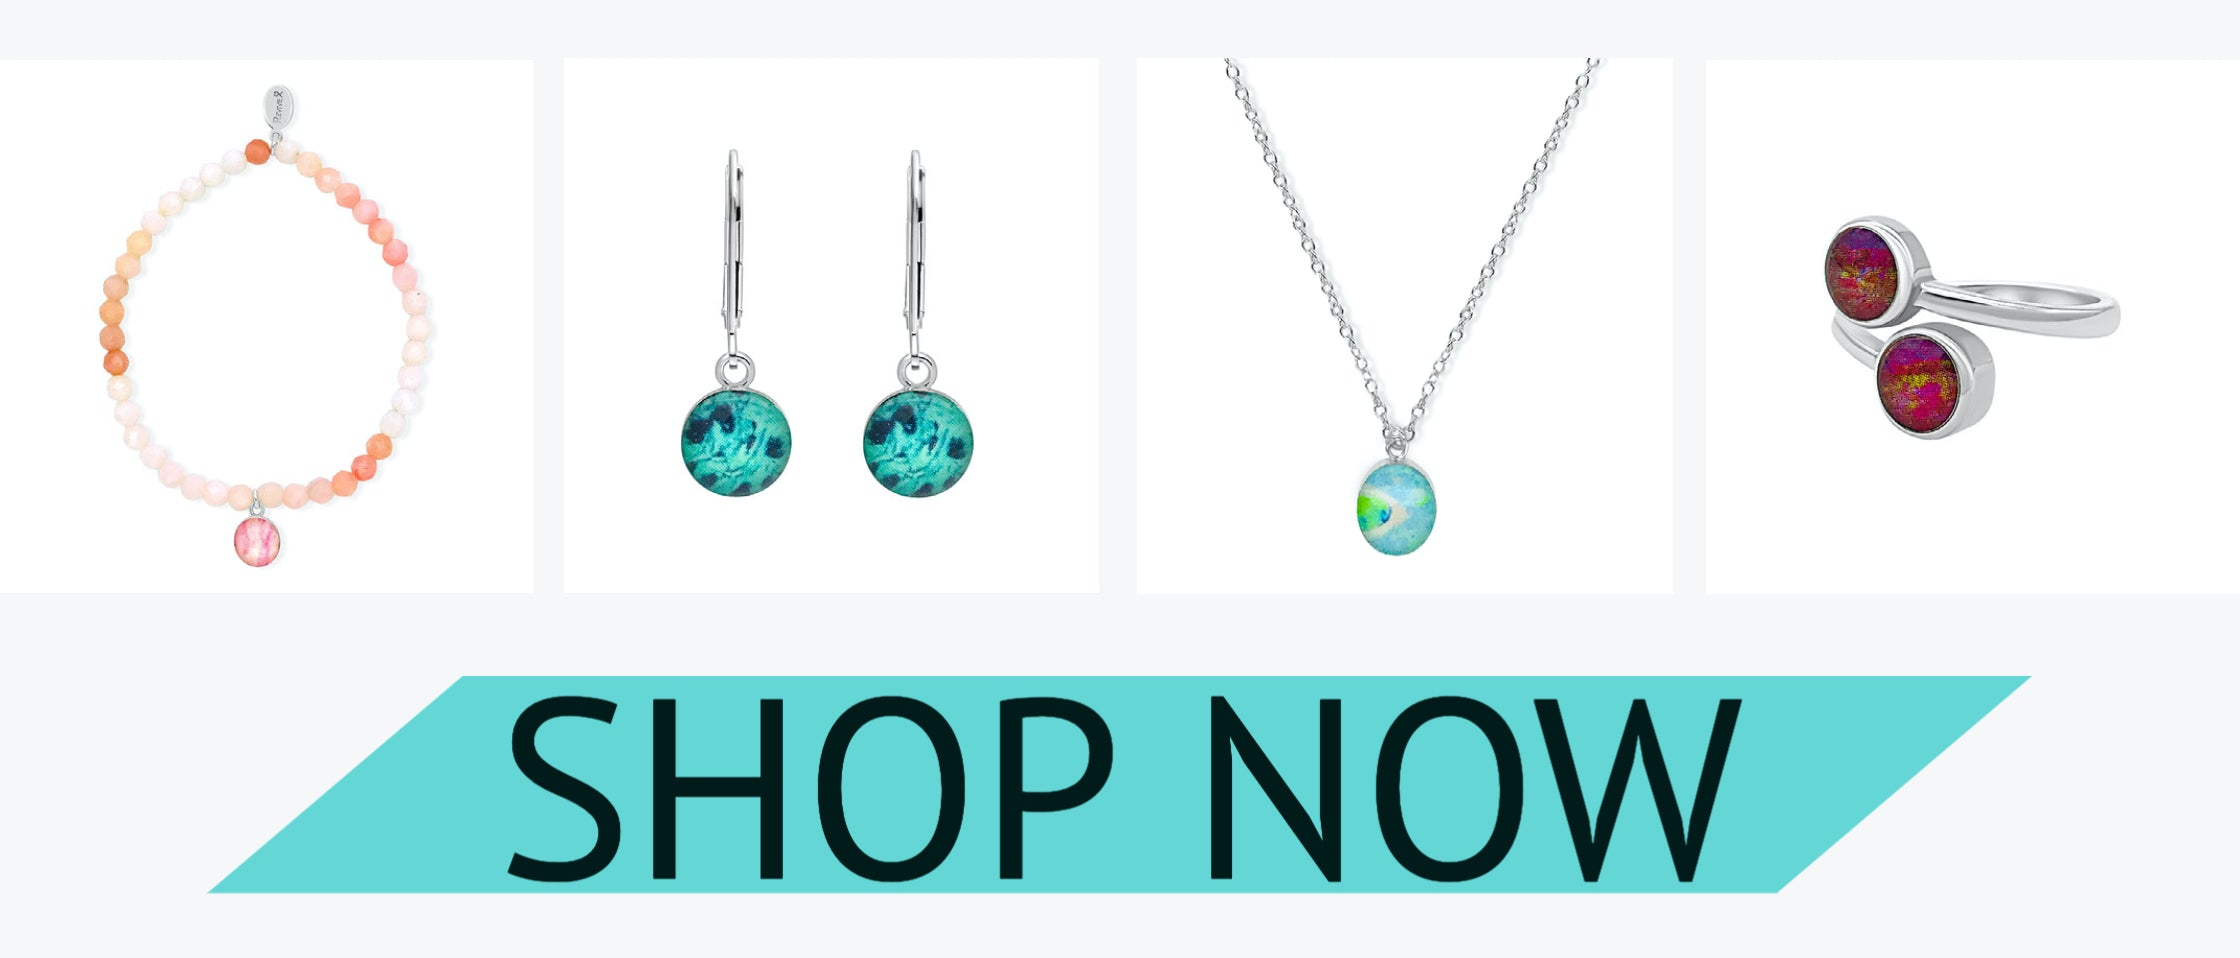 best selling jewelry collage shop now